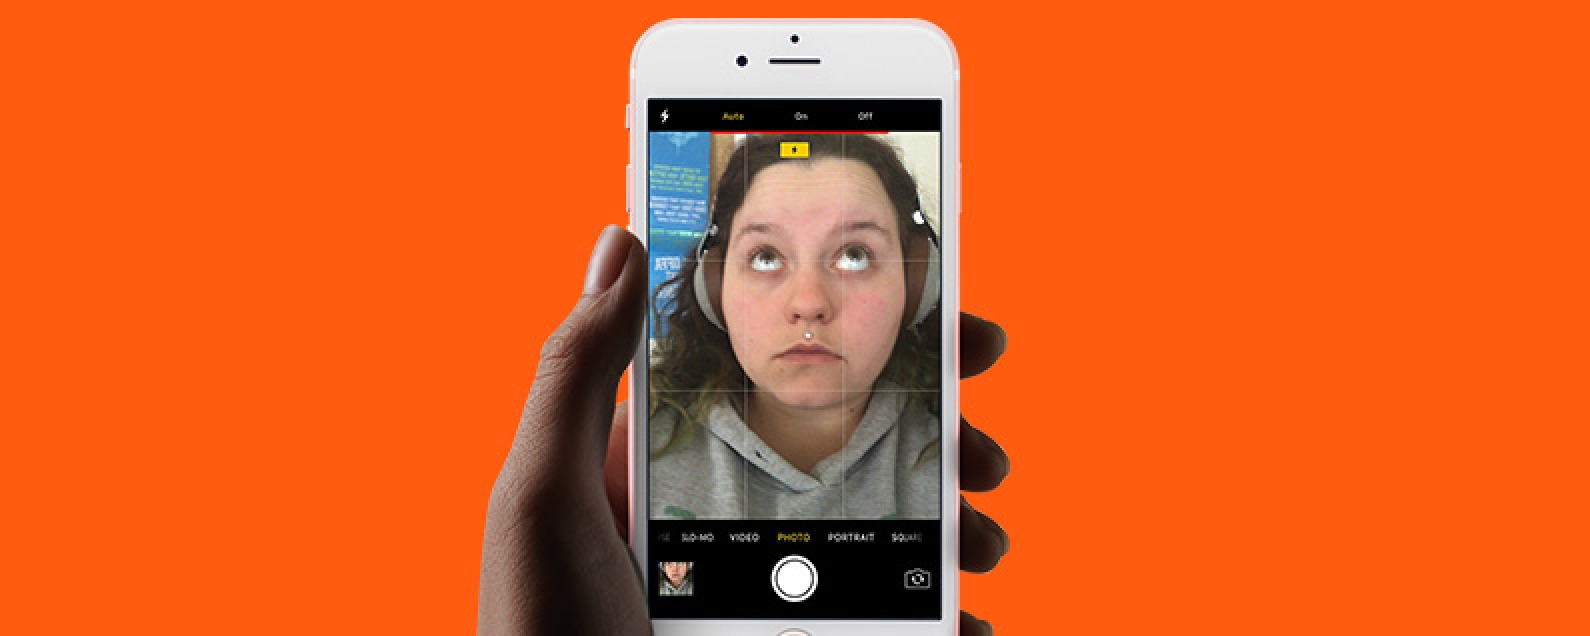 How to Turn Selfie Flash On & Off on iPhone | iPhoneLife com